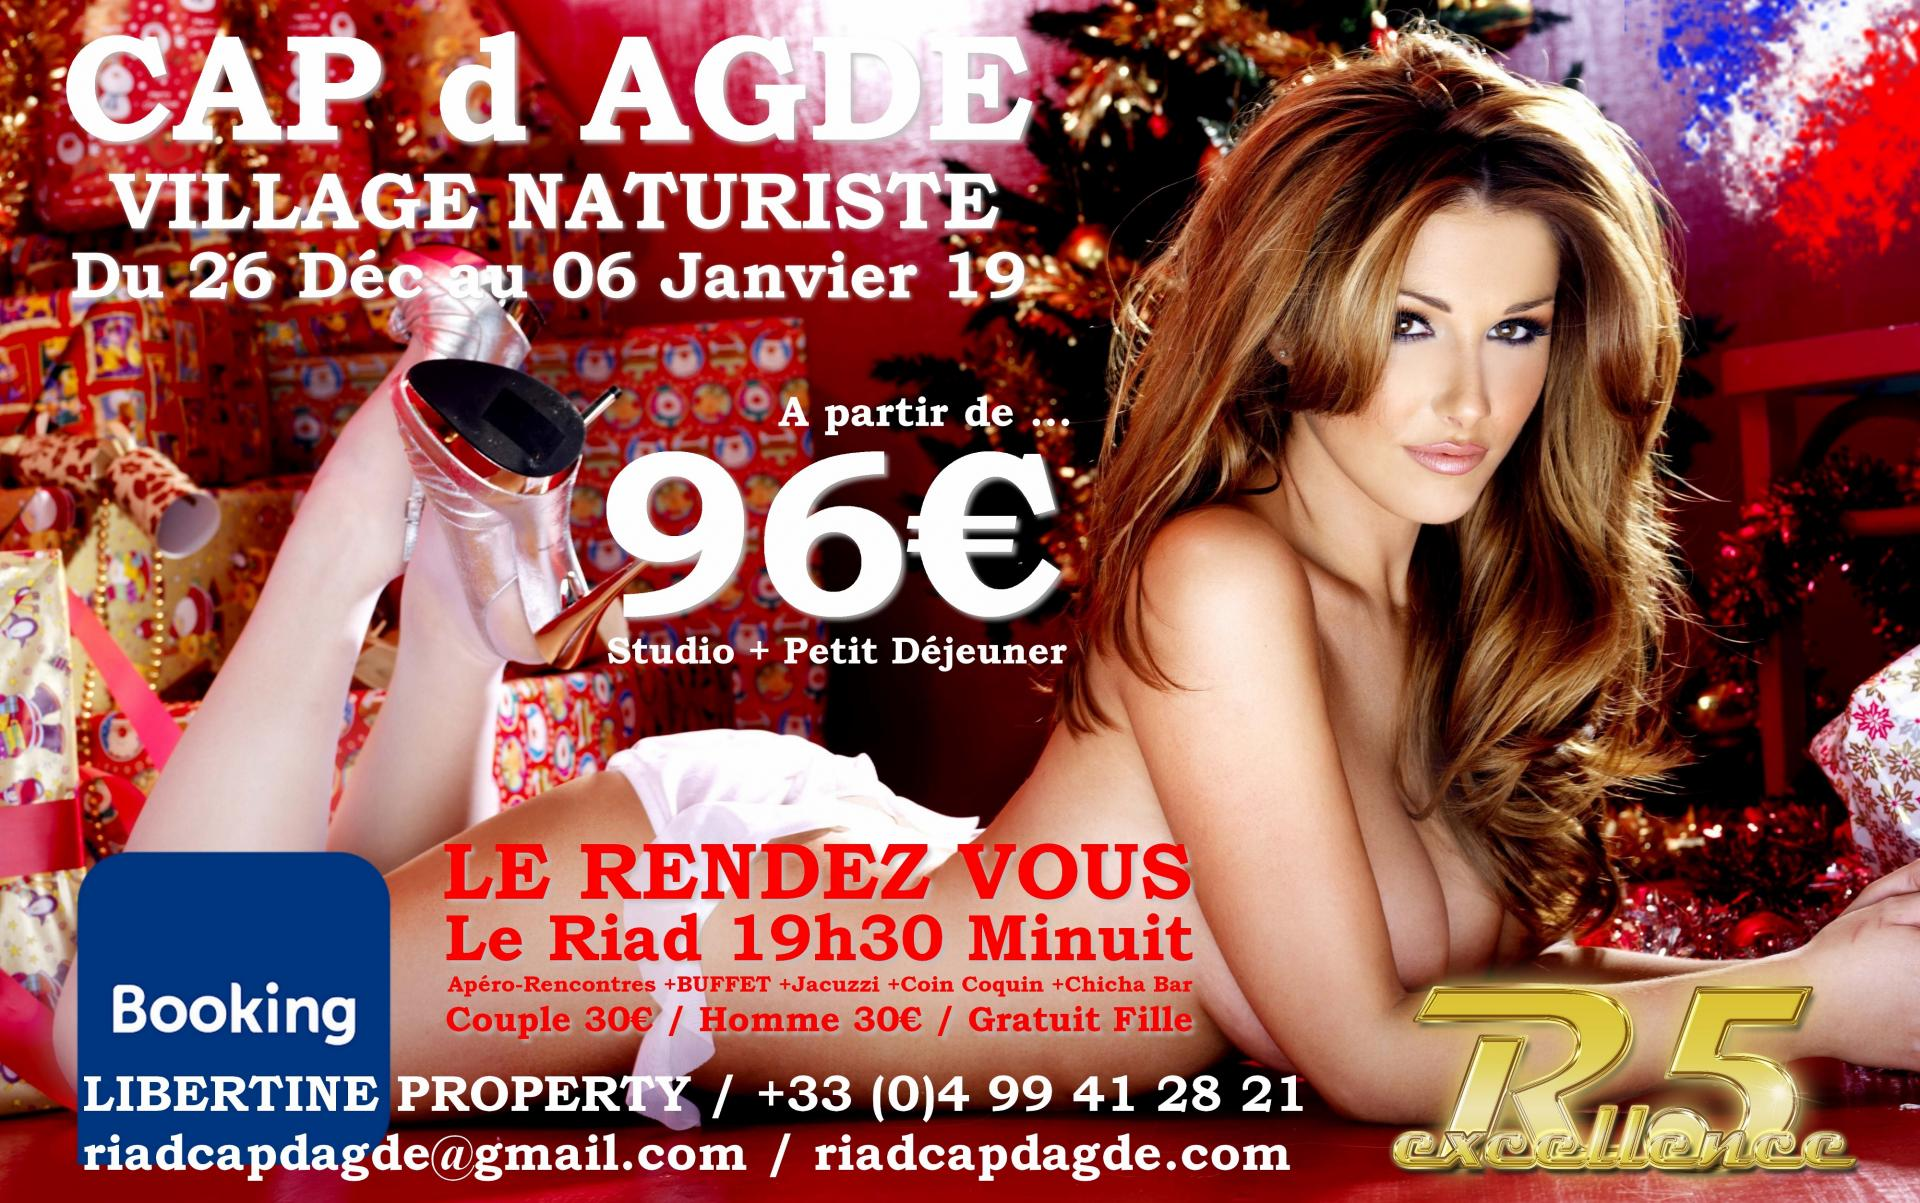 VILLAGE NATURISTE du CAP d AGDE - 6 Agency and Partner Hotel - LE RENDEZ VOUS FEDERATION LIBERTINE - Plage Le Galion - 18 PARTNER RESTAURANTS - Pool  Party Babylone - JARDIN d EDEN - Waiki Beach - CONCIERGERIE 24/24 - Sortie Mer TheLoveBoat